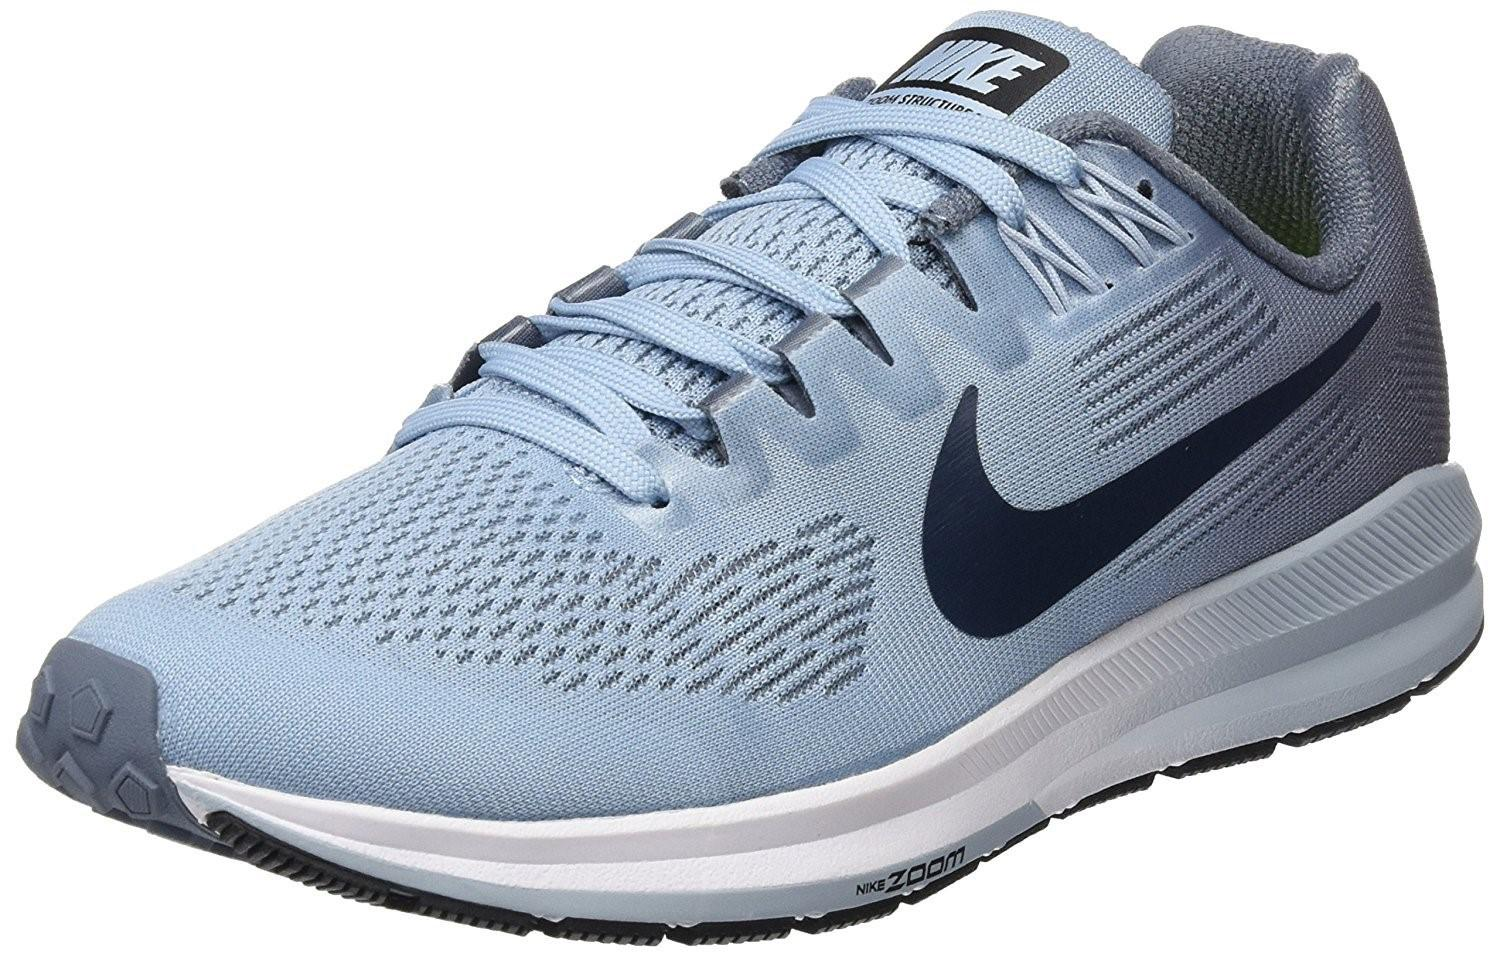 6b1cd410449 Lyst - Nike Air Zoom Structure 21 Running Shoe in Blue for Men